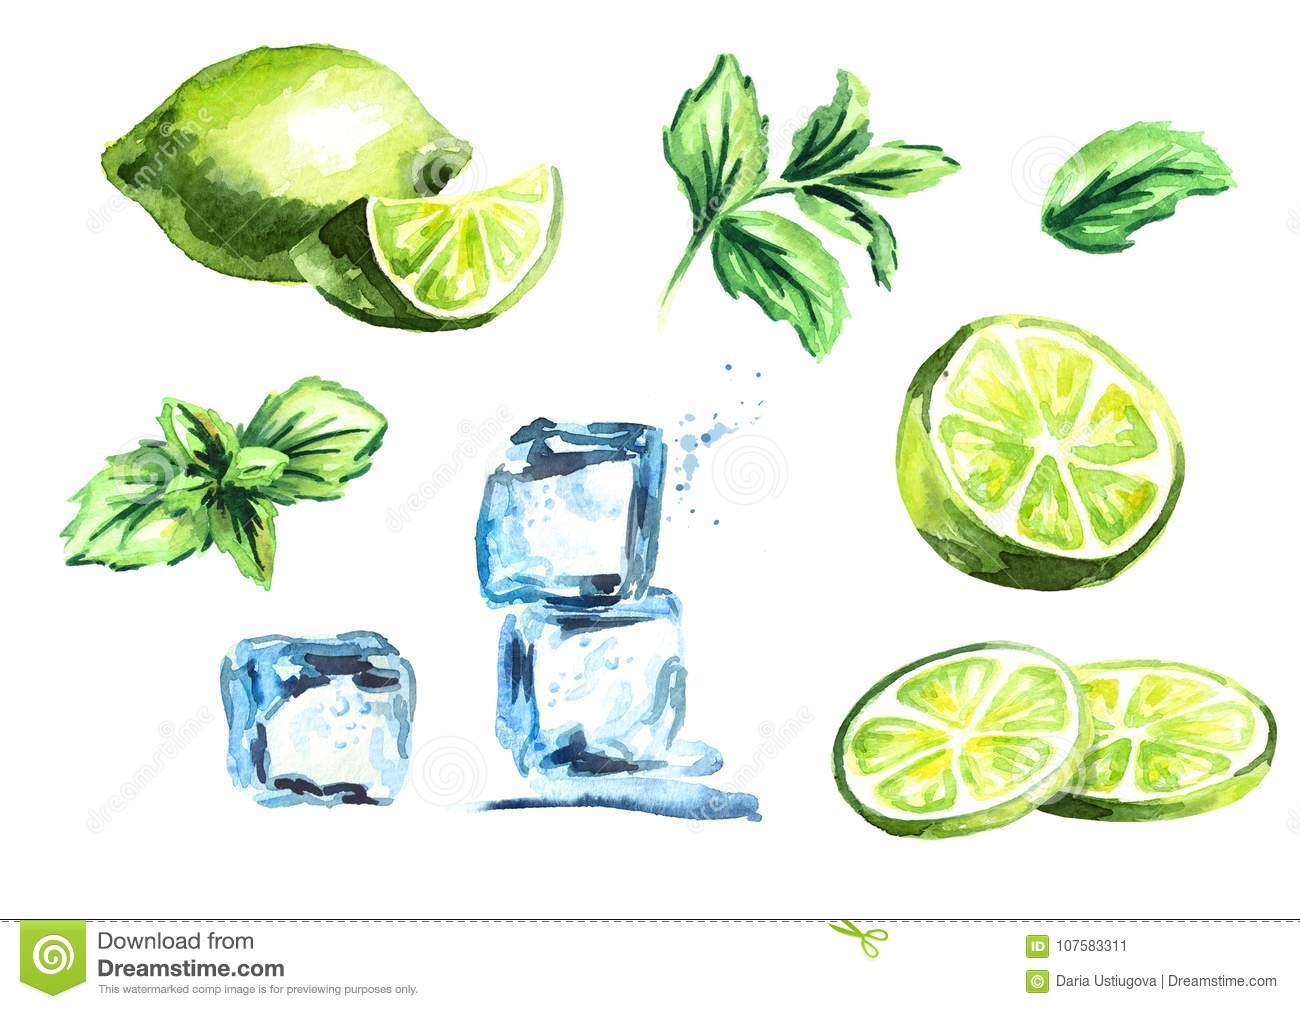 Ice cubes, lime and mint leaves isolated on white background set. Watercolor hand drawn illustration